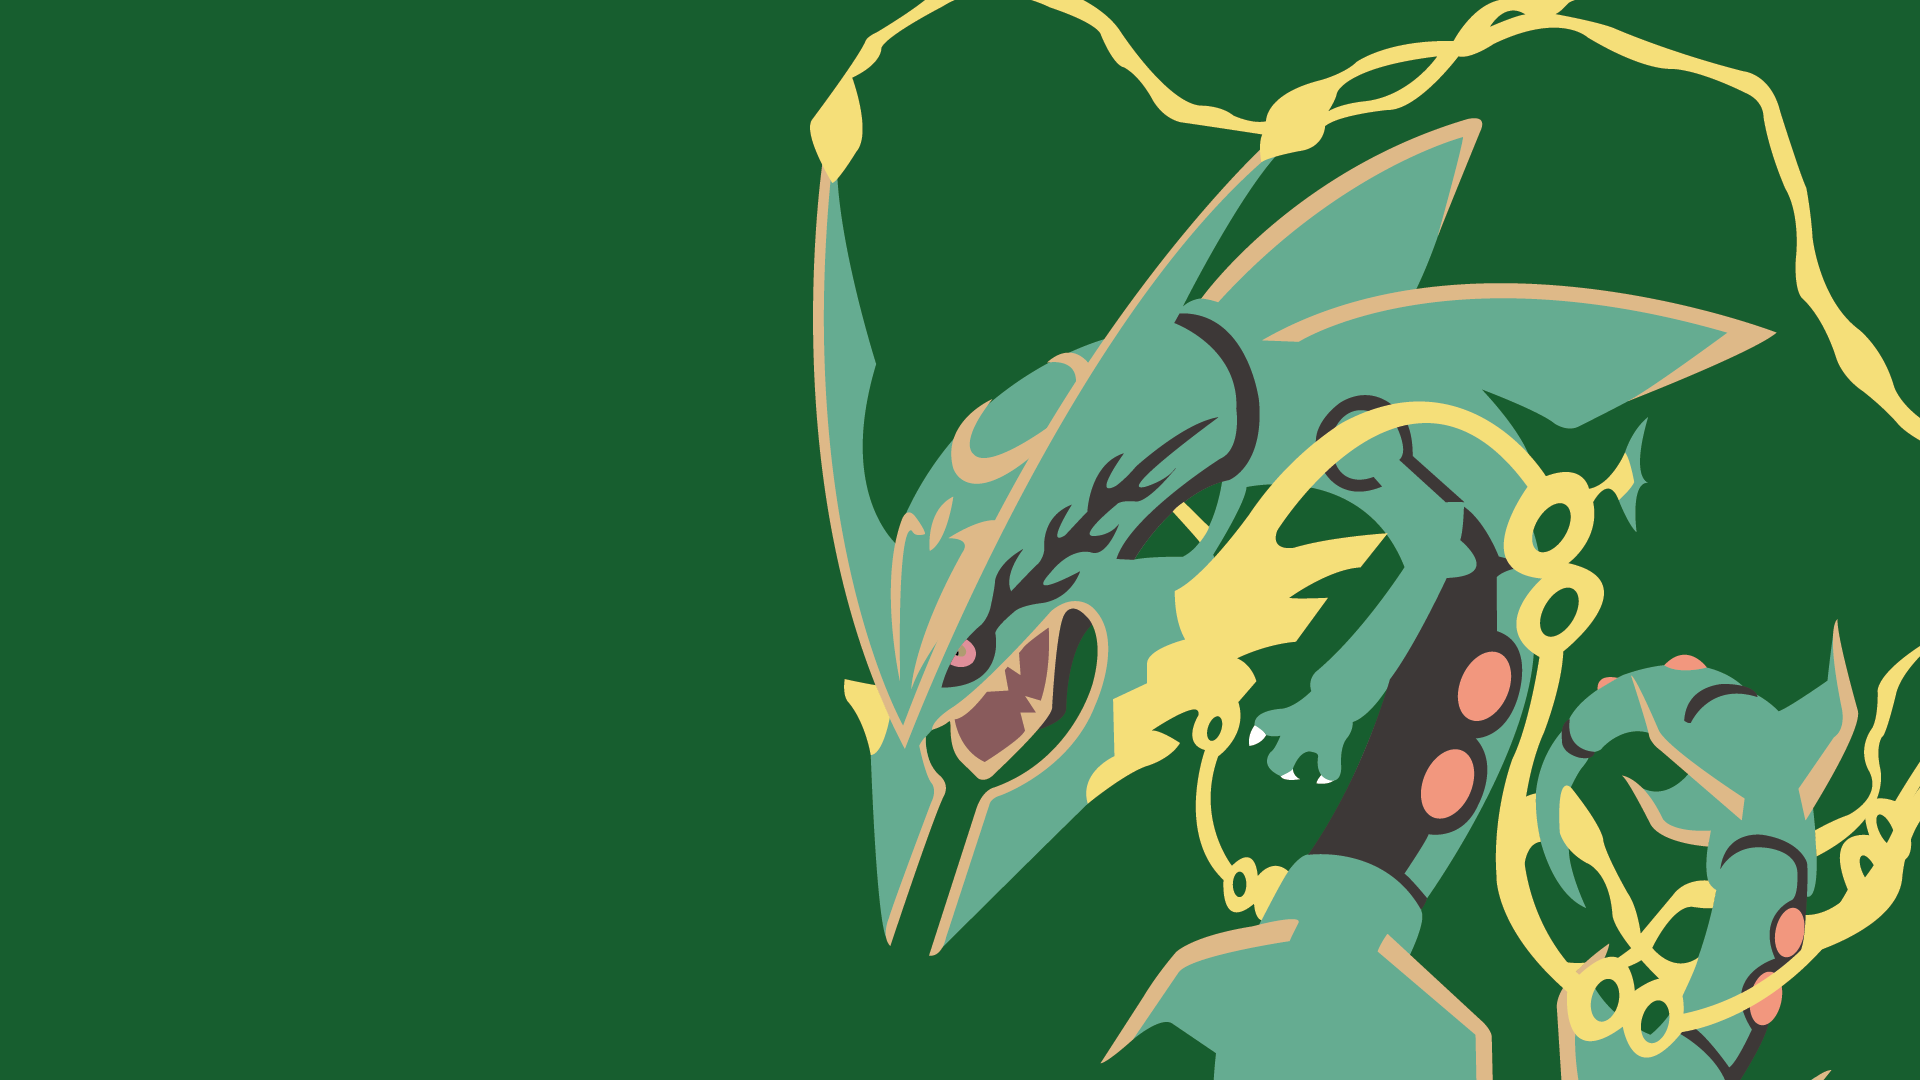 emerald rayquaza wallpapers - photo #26